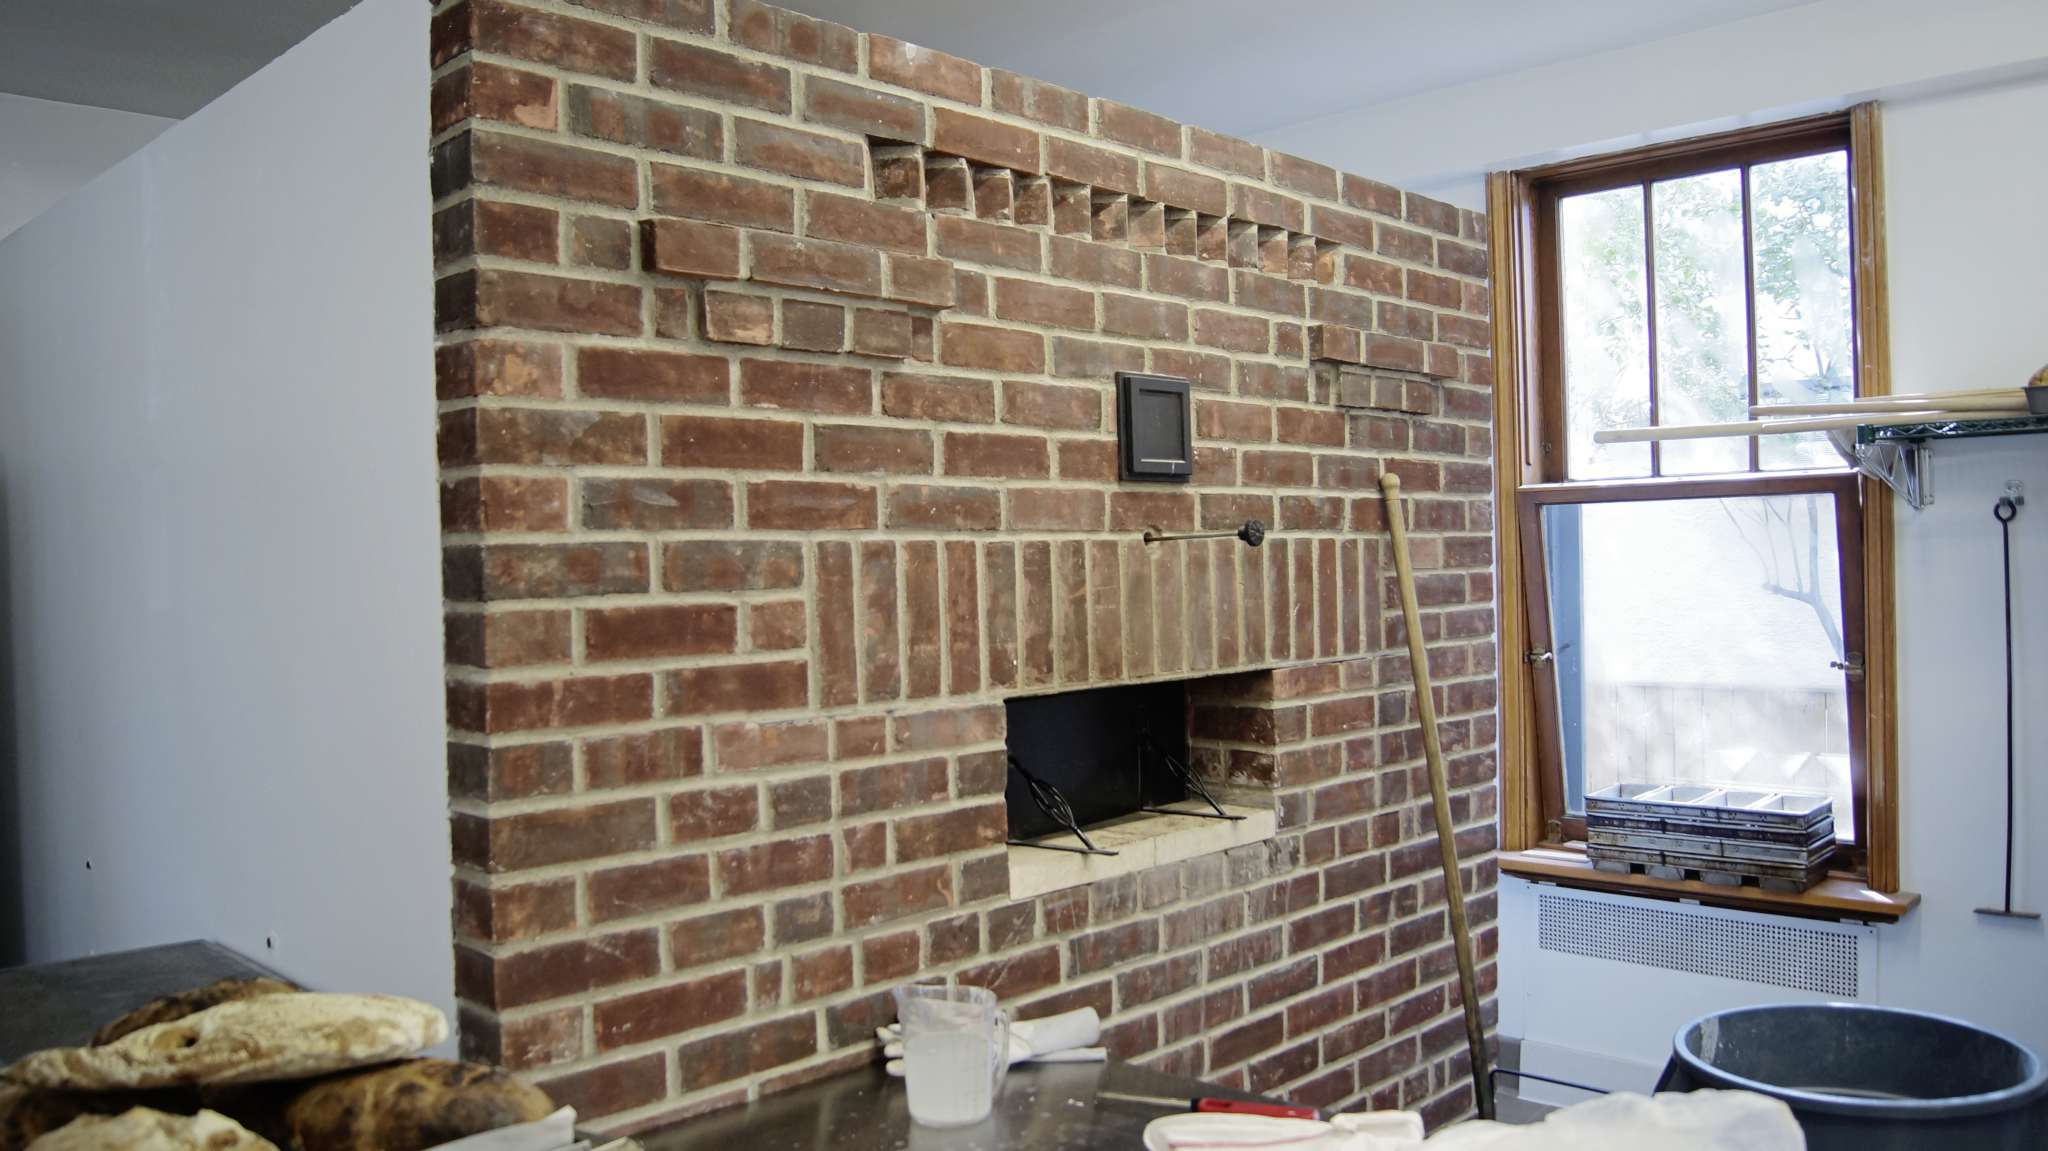 This wood fired brick oven gives The Pennyloaf Bakery its charm.